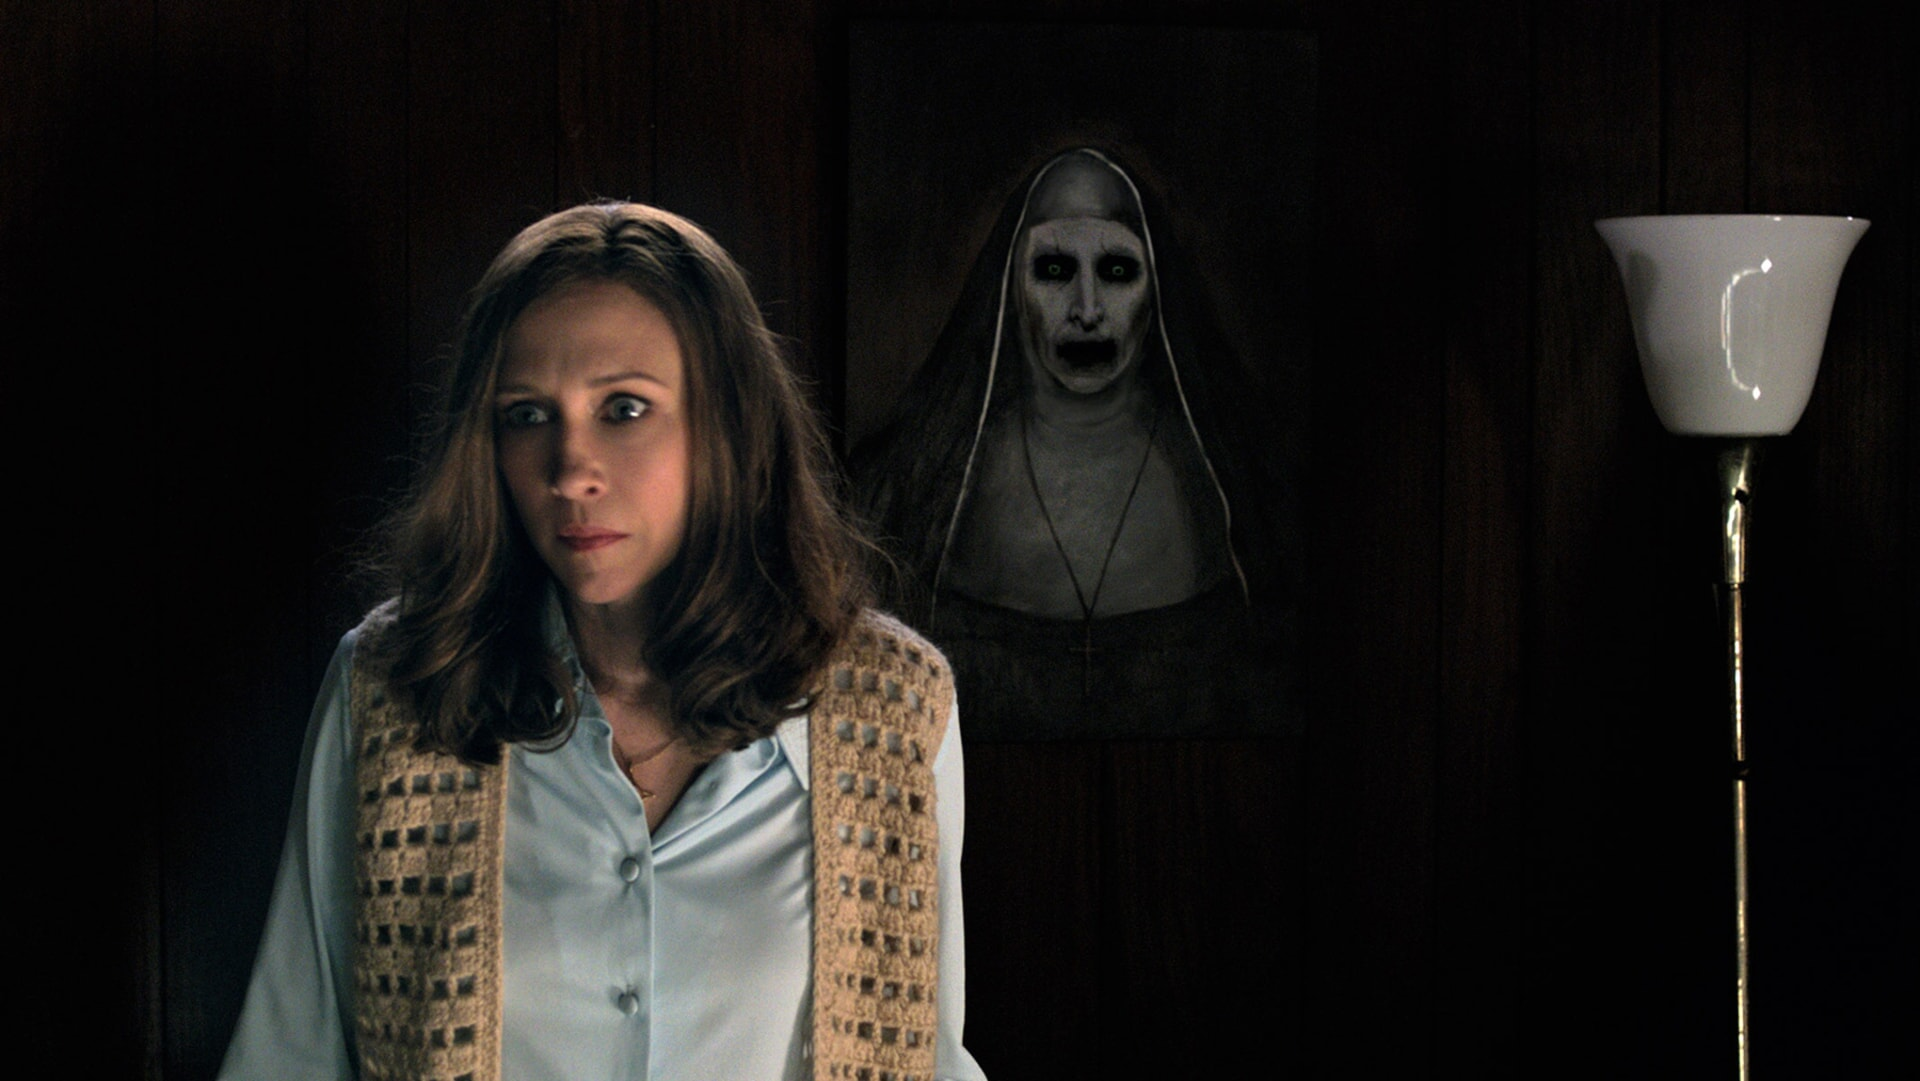 VERA FARMIGA as Lorraine Warren wearing a crocheted sweater vest with a ghostly apparition appearing over her shoulder